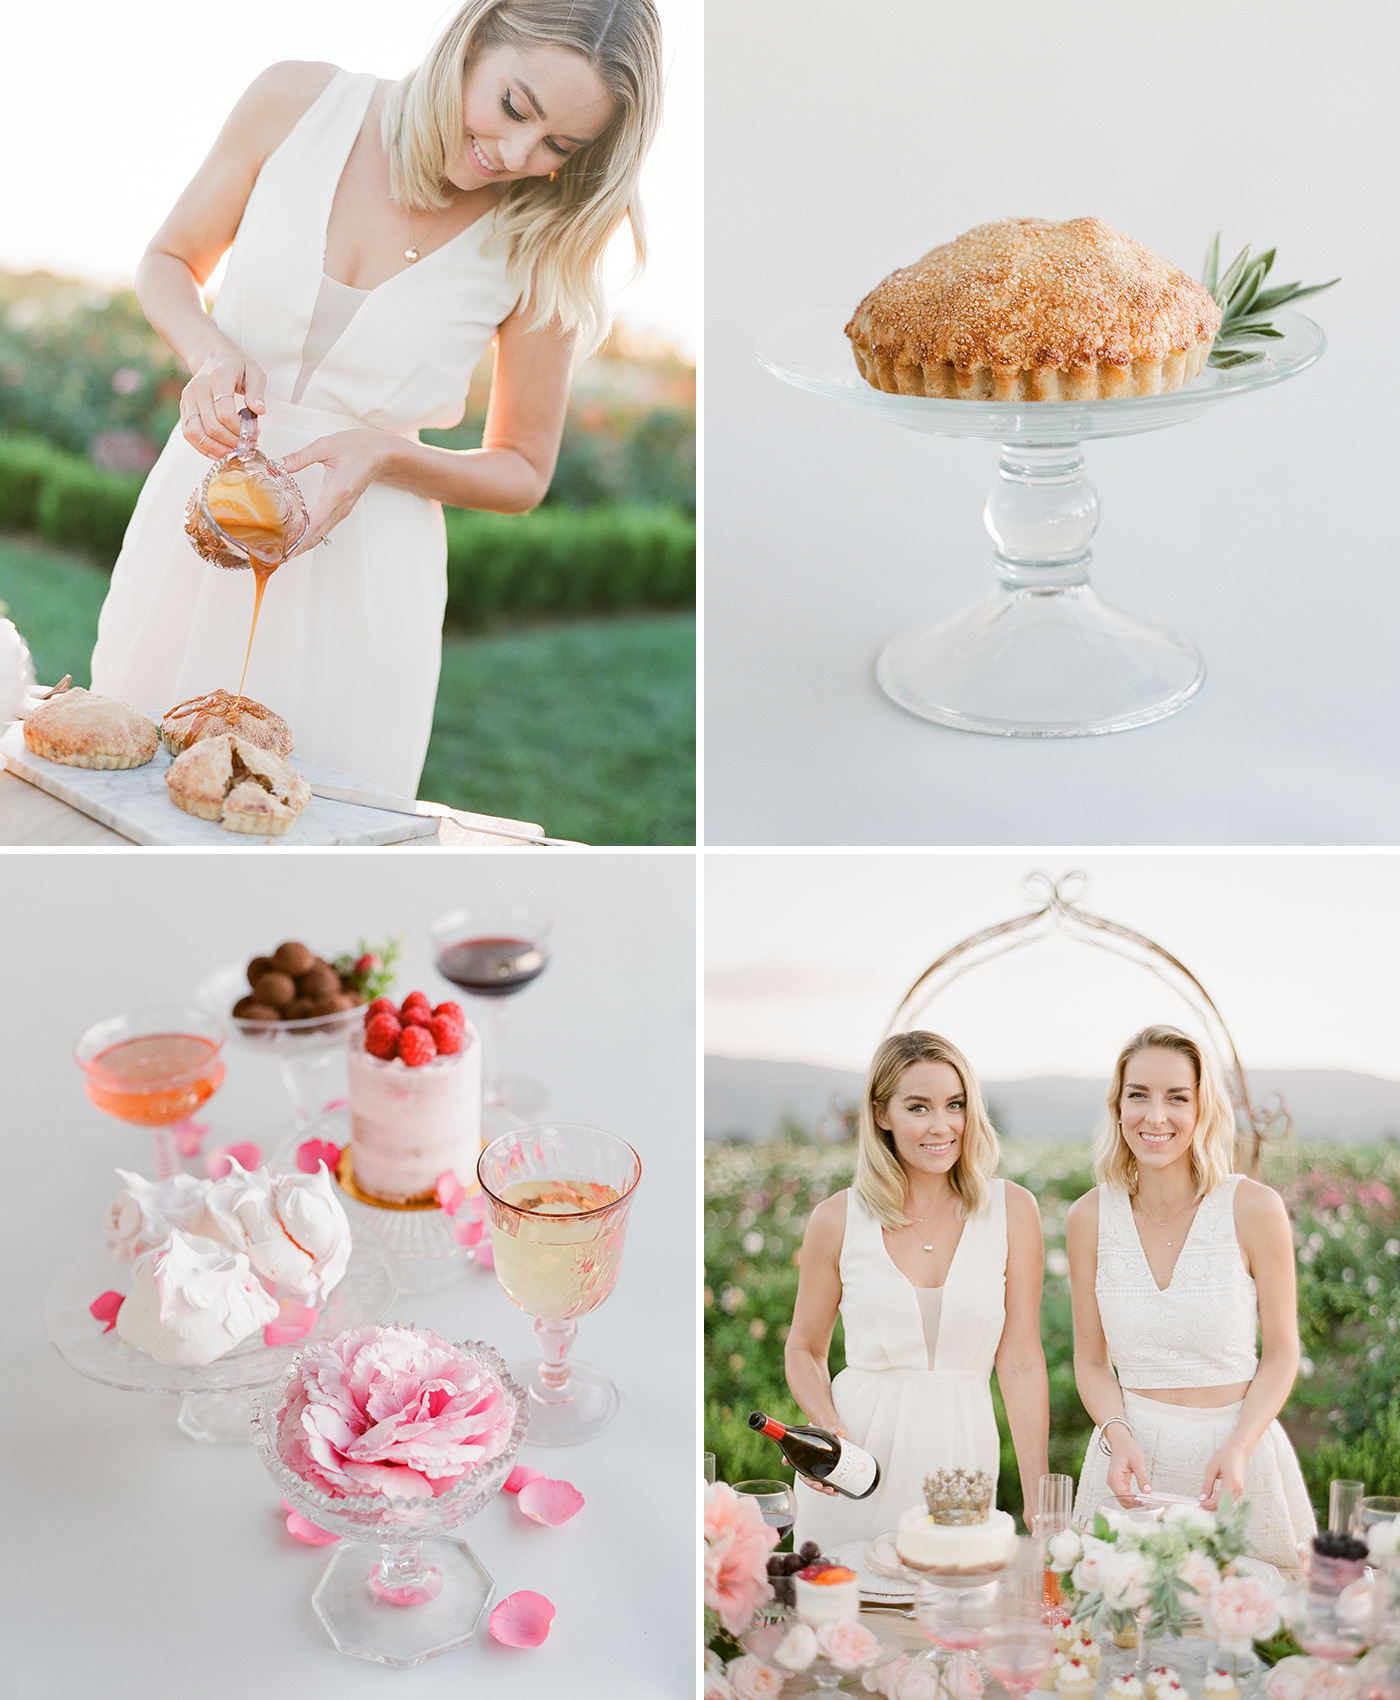 fashion to table with lauren conrad and maura mcmanus10